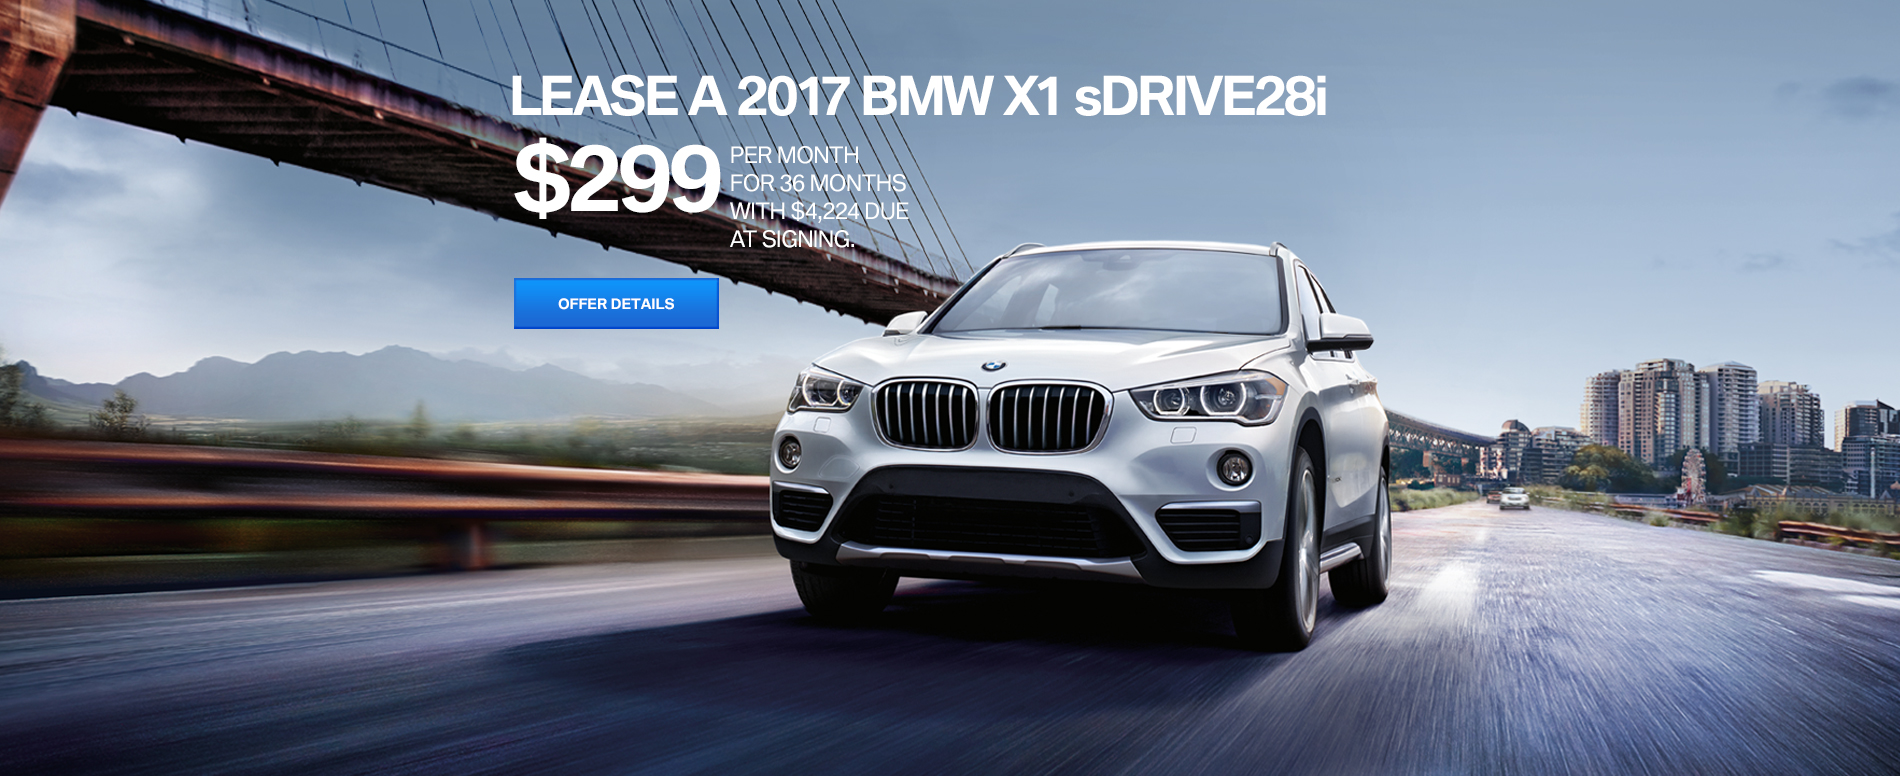 LEASE A 2017 BMW X1 sDRIVE28i FOR $299/MO FOR 36 MONTHS, WITH $4